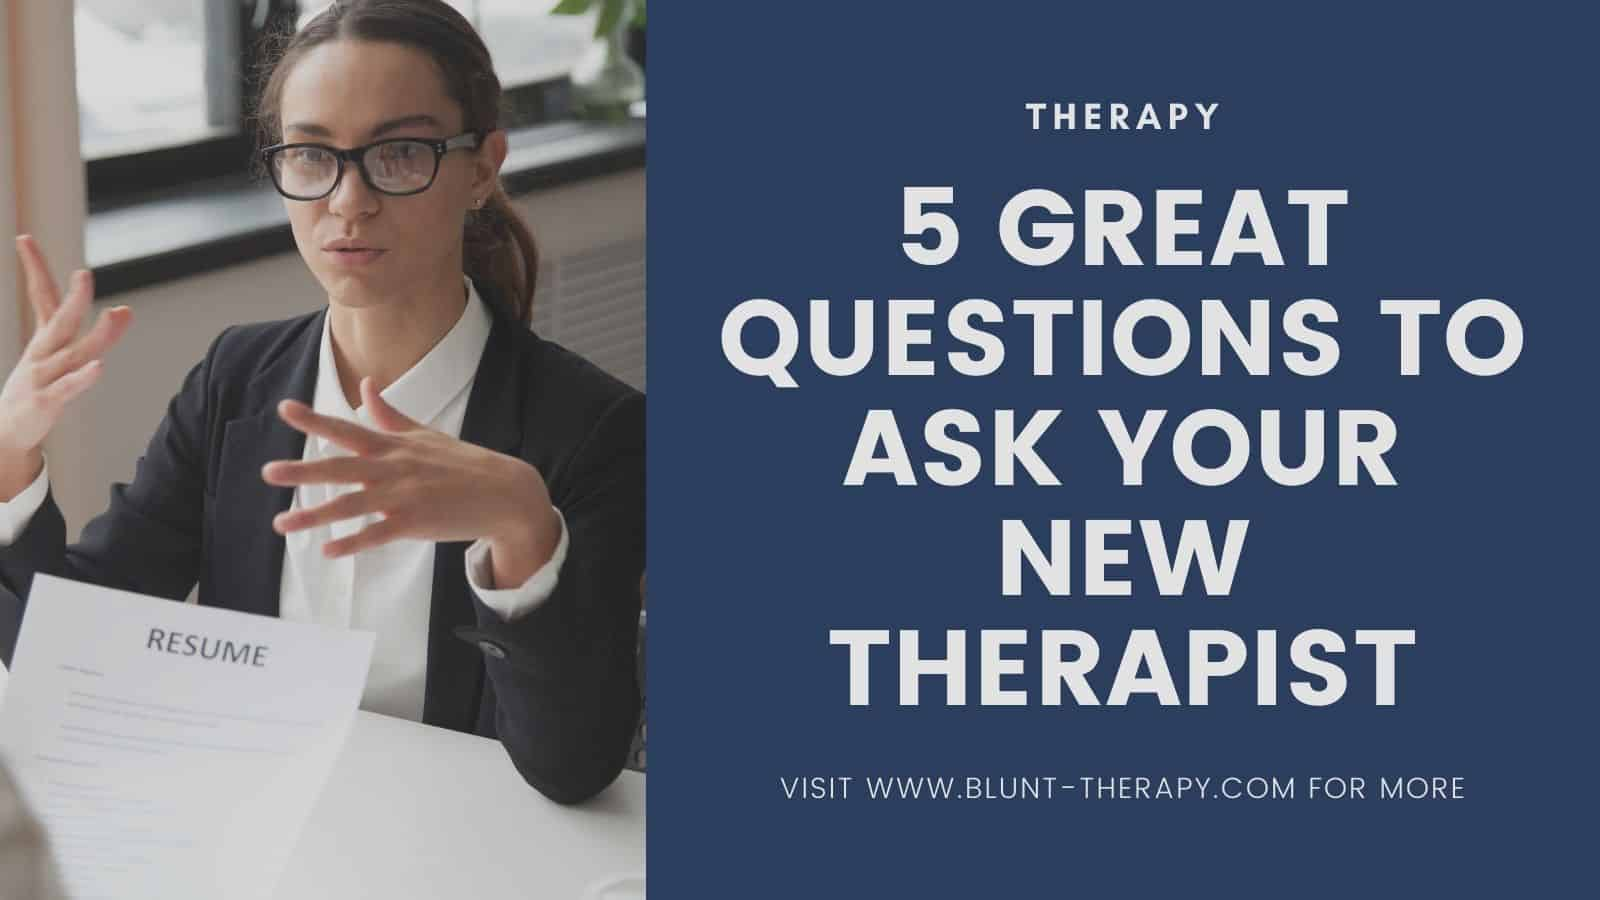 5 Great Questions To Ask Your New Therapist